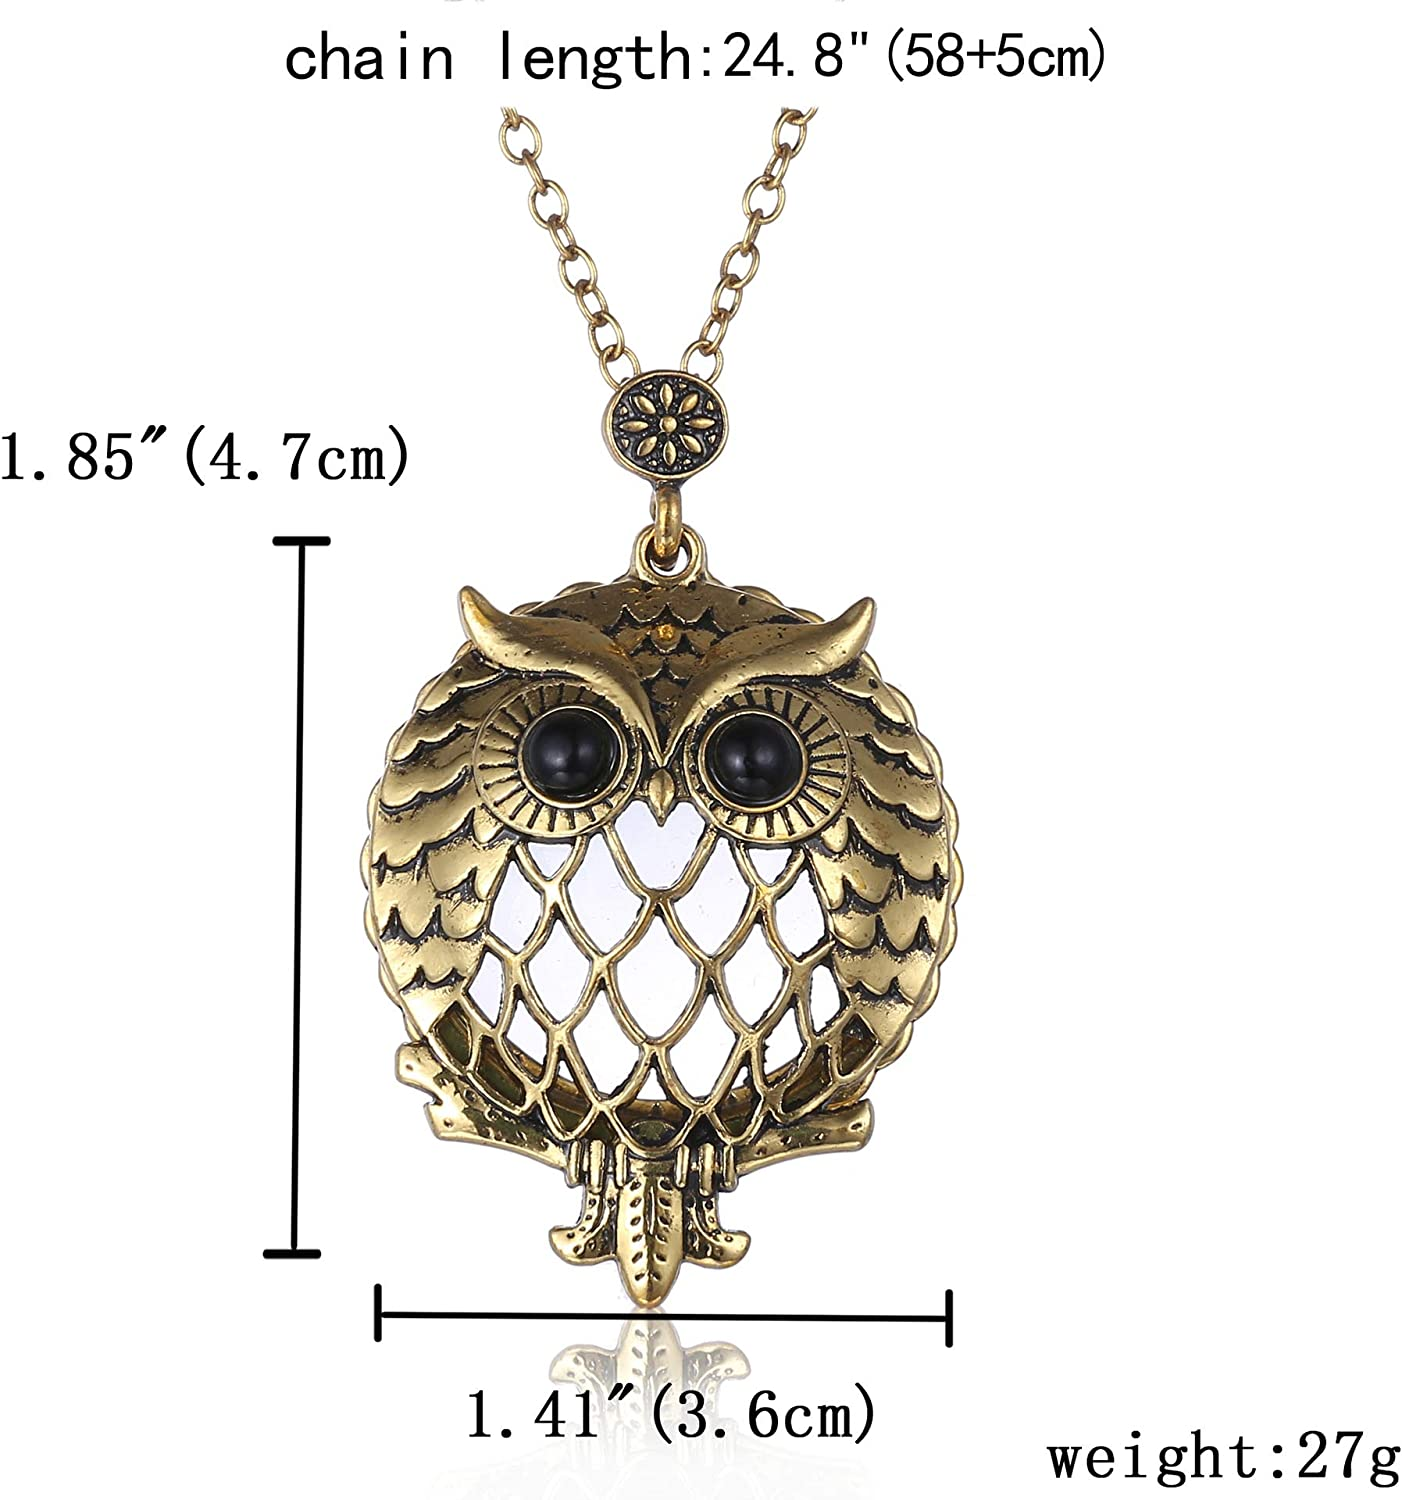 HIKEL 5X Vintage Owl Portable Magnifying Glass Pendant Necklace Pendants Trendy Jewelry for Women Necklace Girls Gift